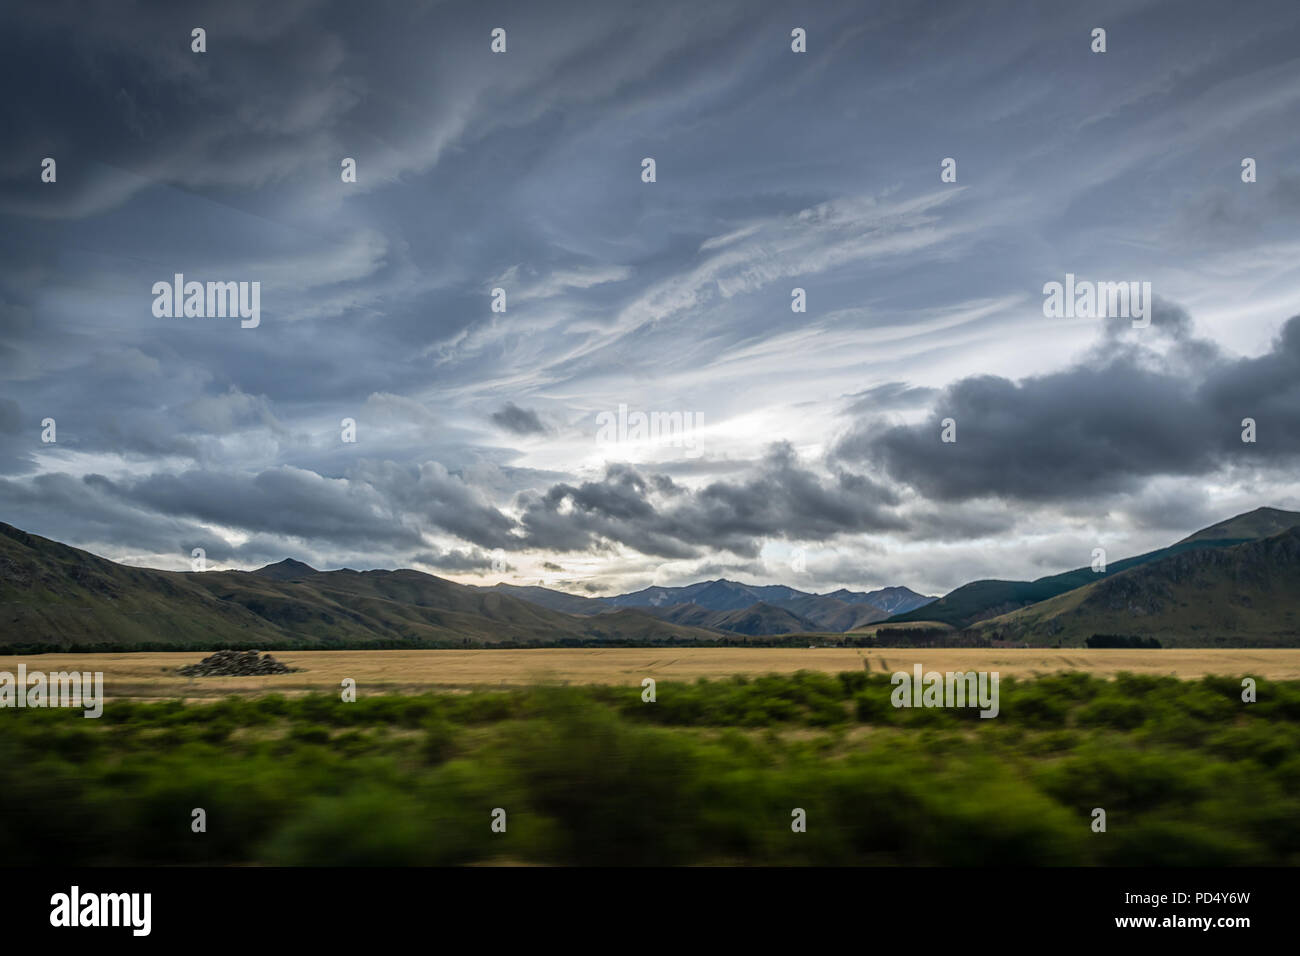 Clouds over Garston - Stock Image